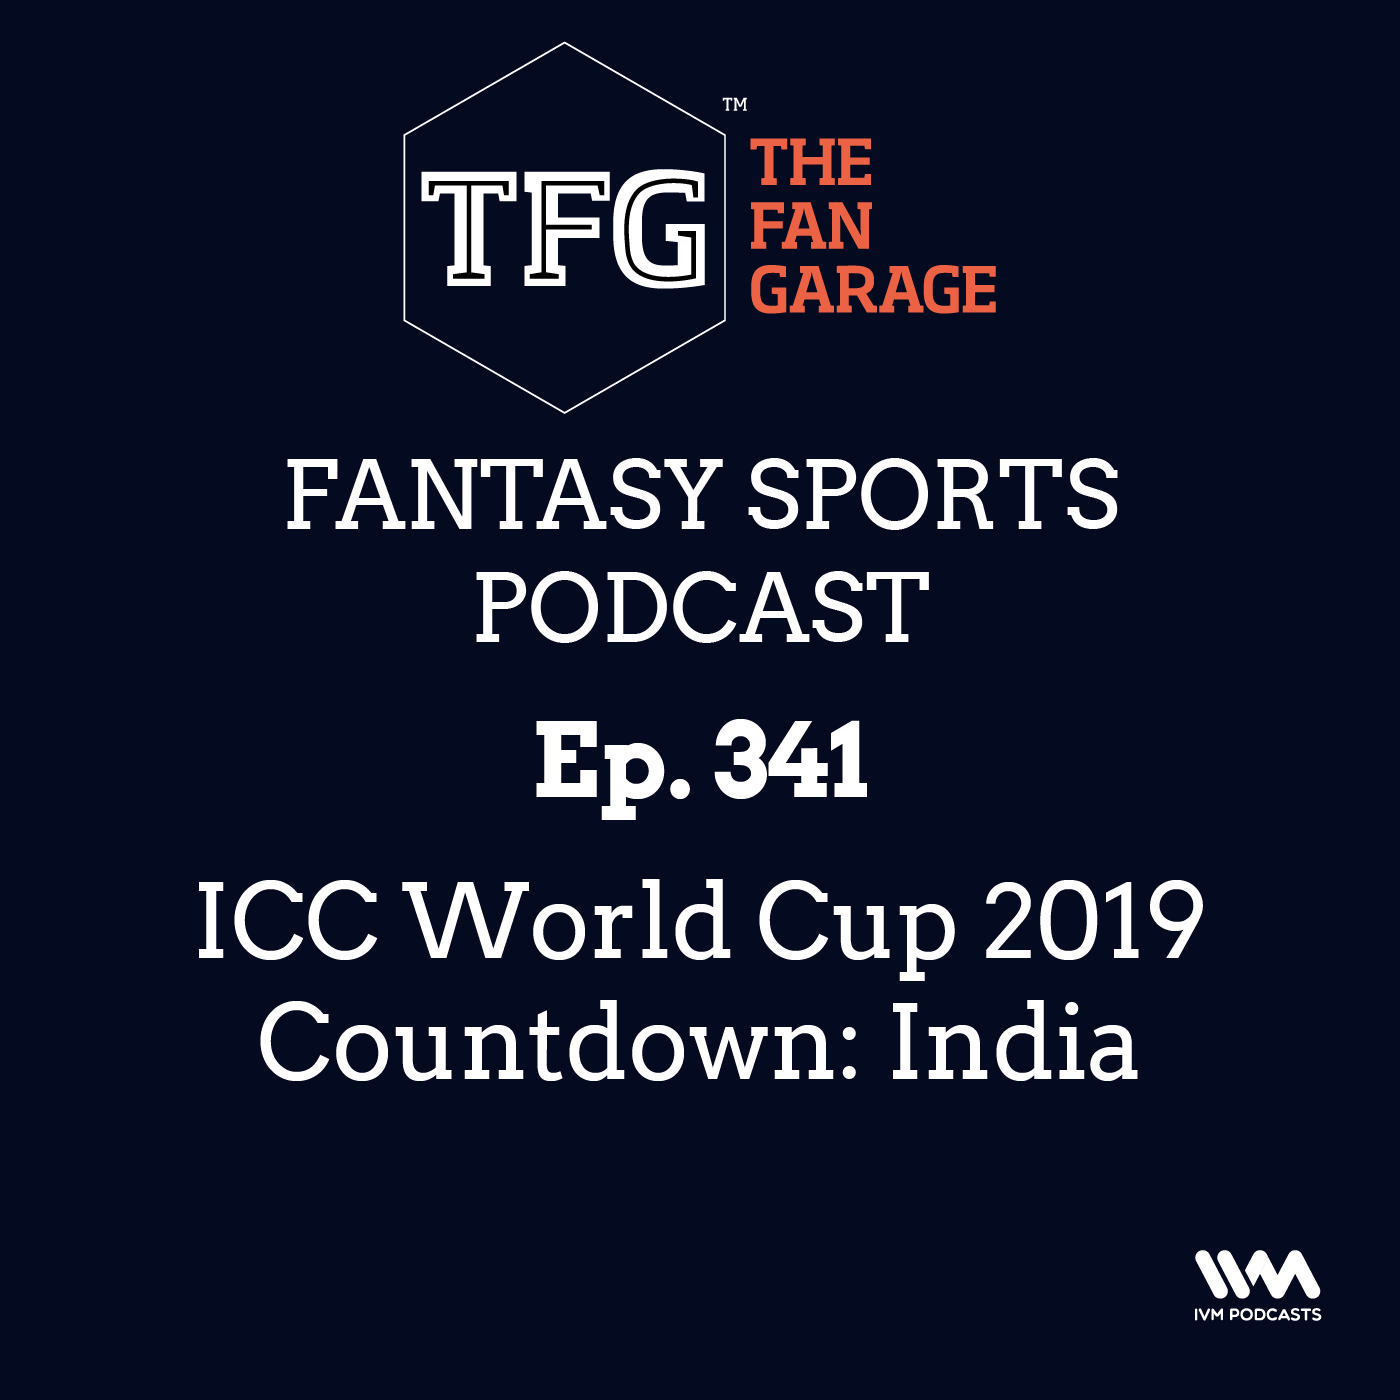 TFG Fantasy Sports Podcast Ep. 341: ICC World Cup 2019 Countdown: India